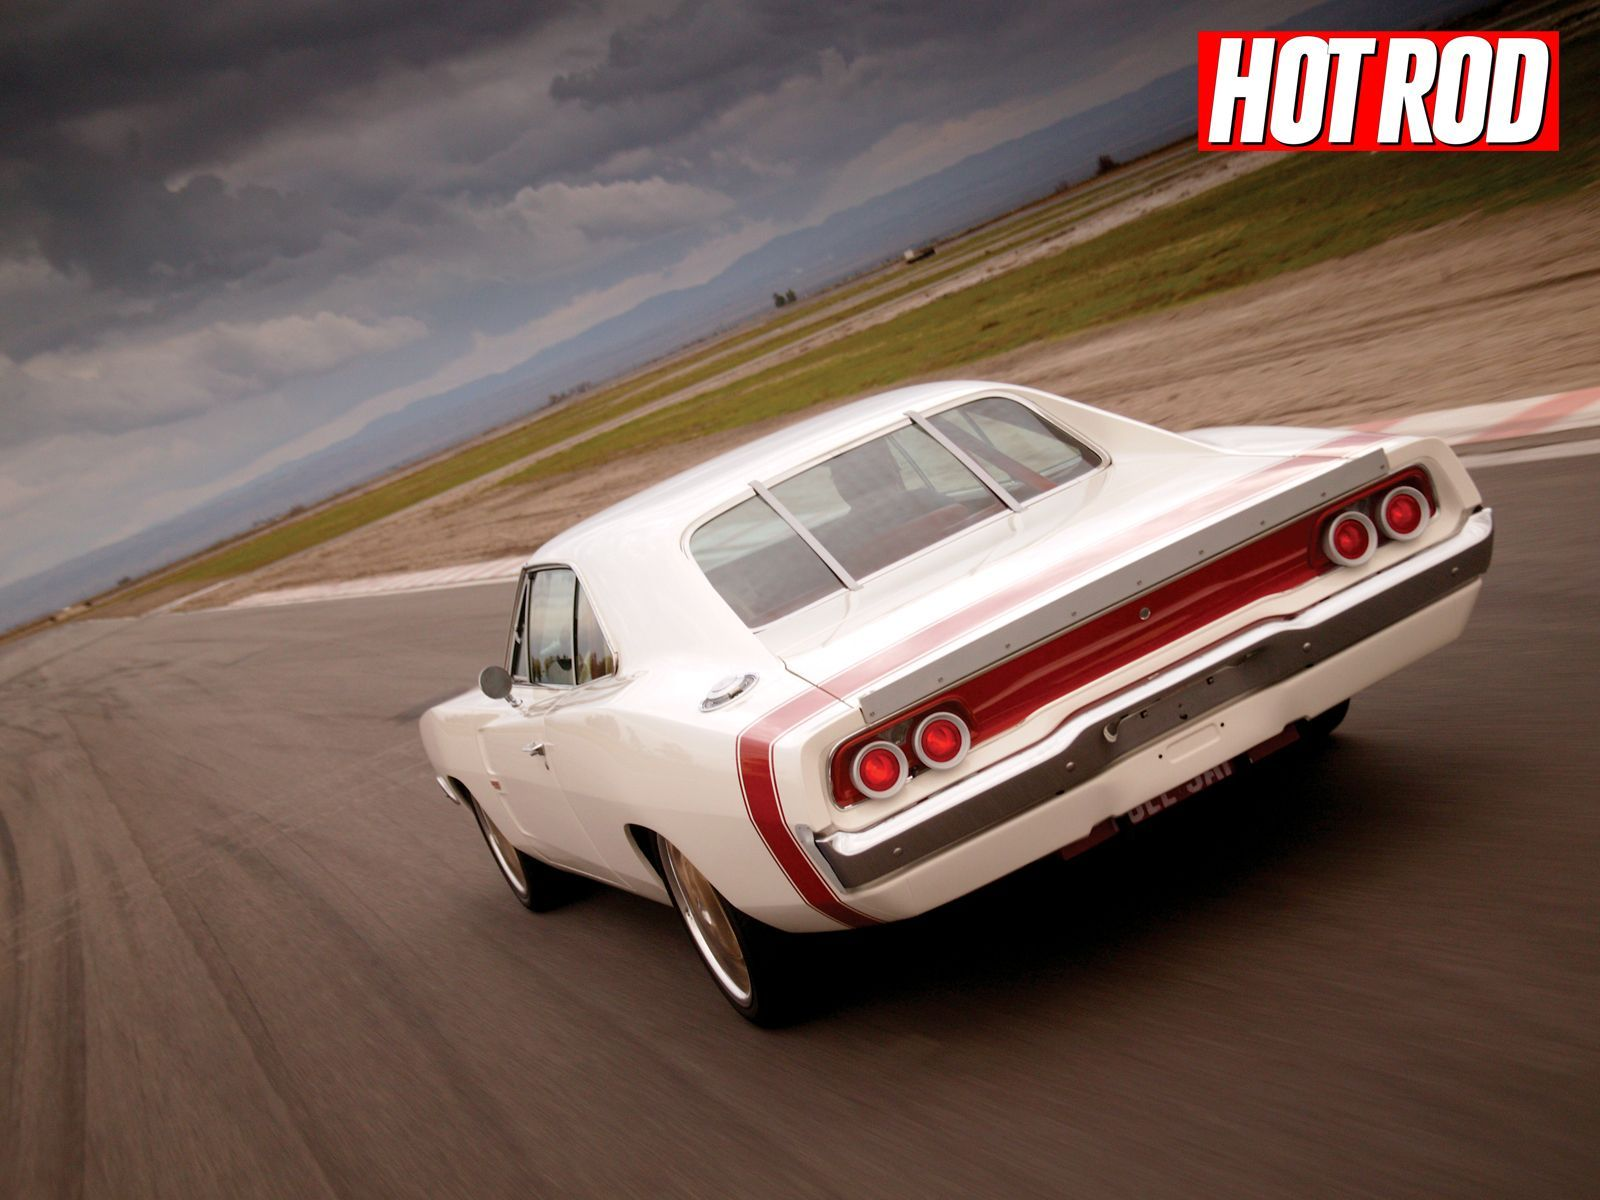 Hot Rod Muscle Car Wallpapers Top Free Hot Rod Muscle Car Backgrounds Wallpaperaccess